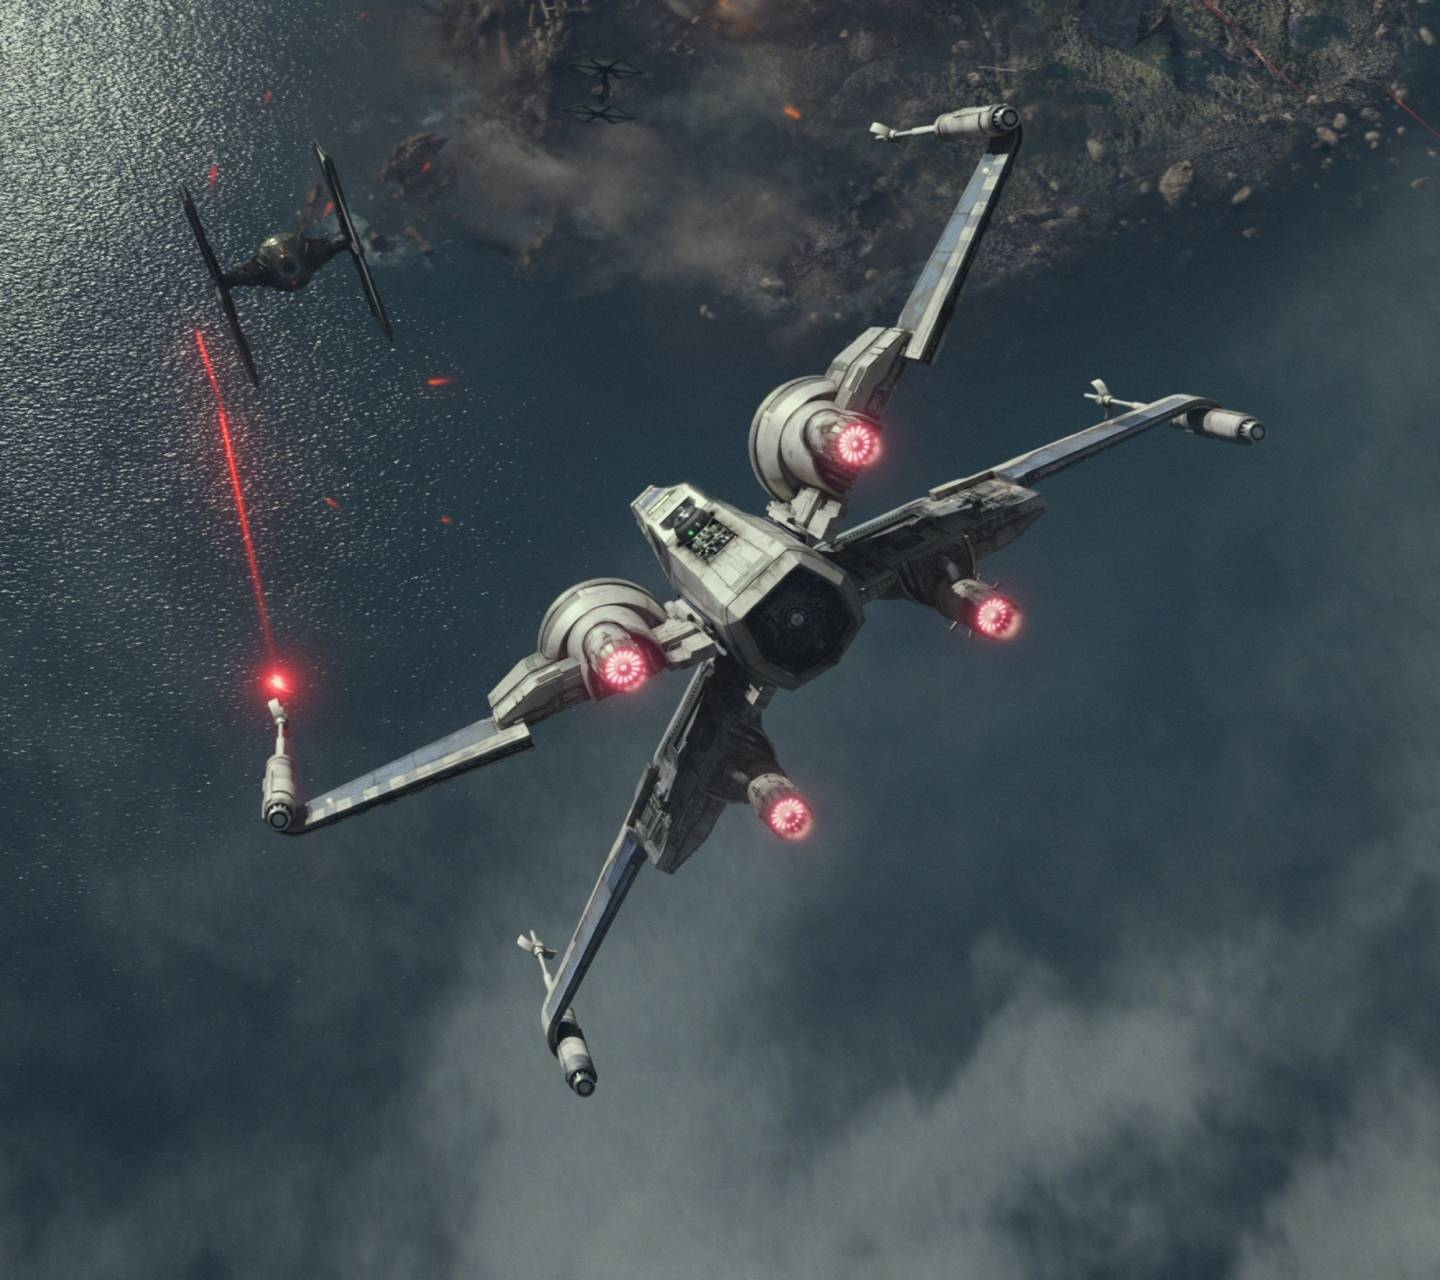 Xwing Vs Tie Fighter